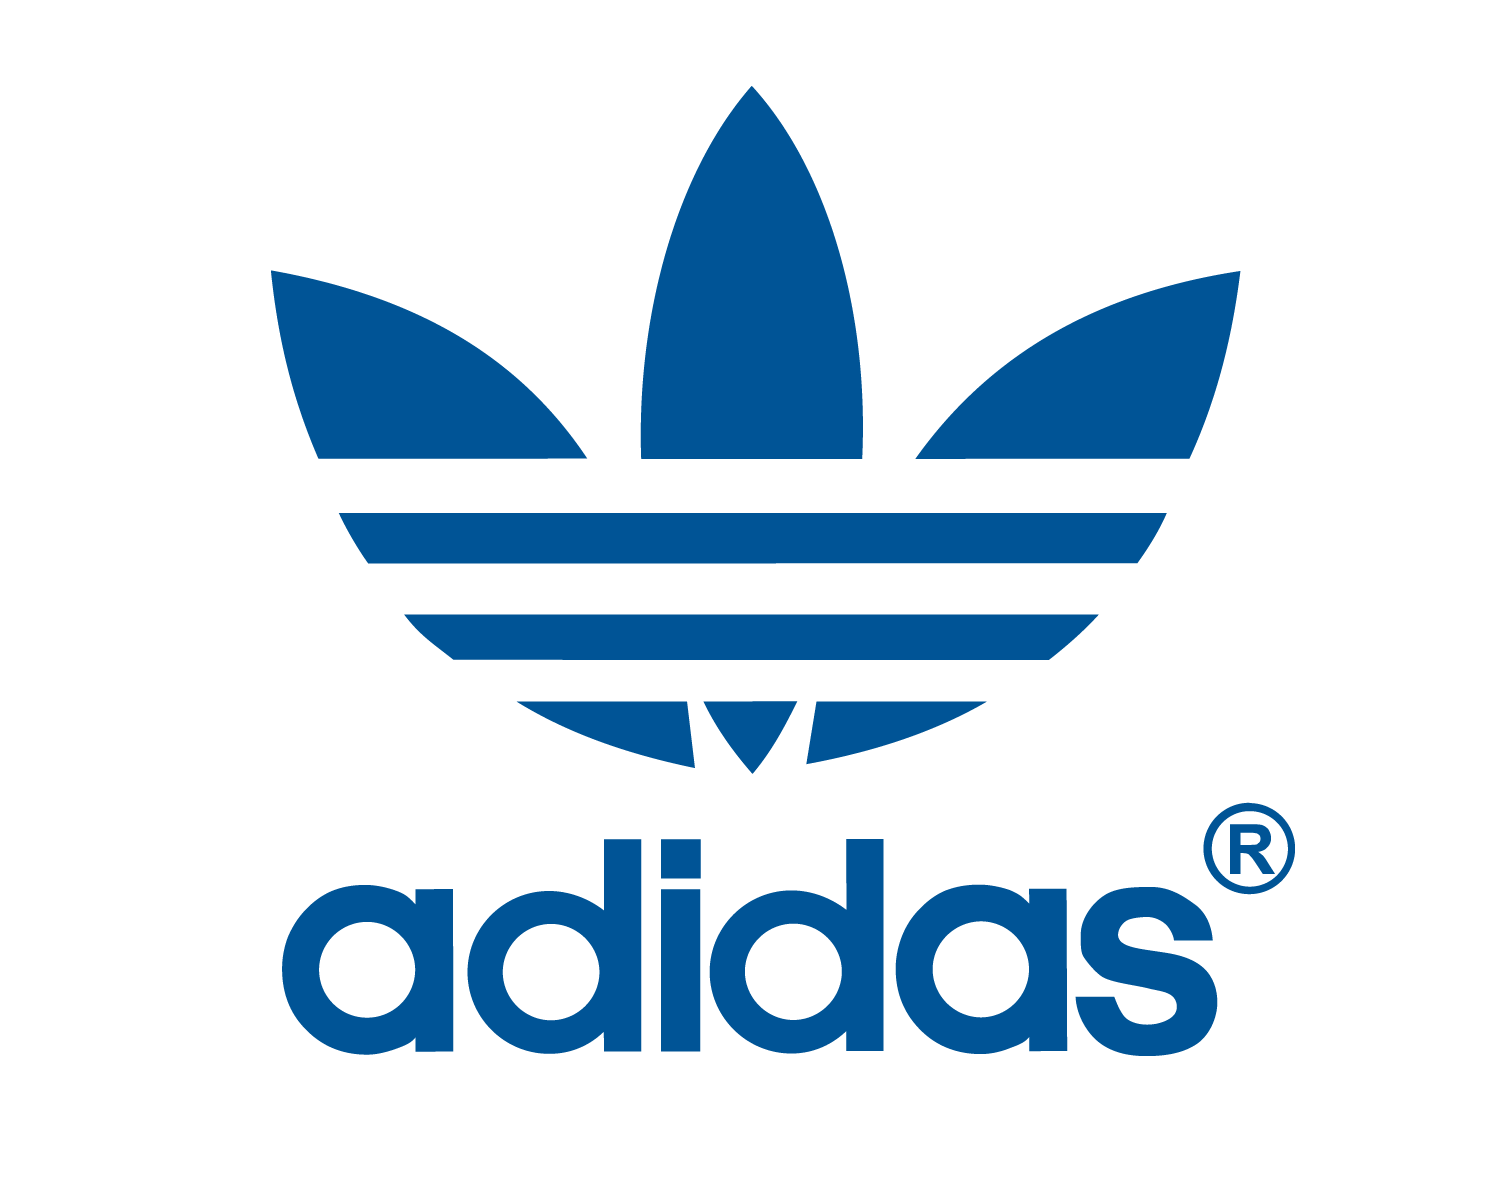 Puma Originals Adidas Reebok Stripes Three Logo PNG Image